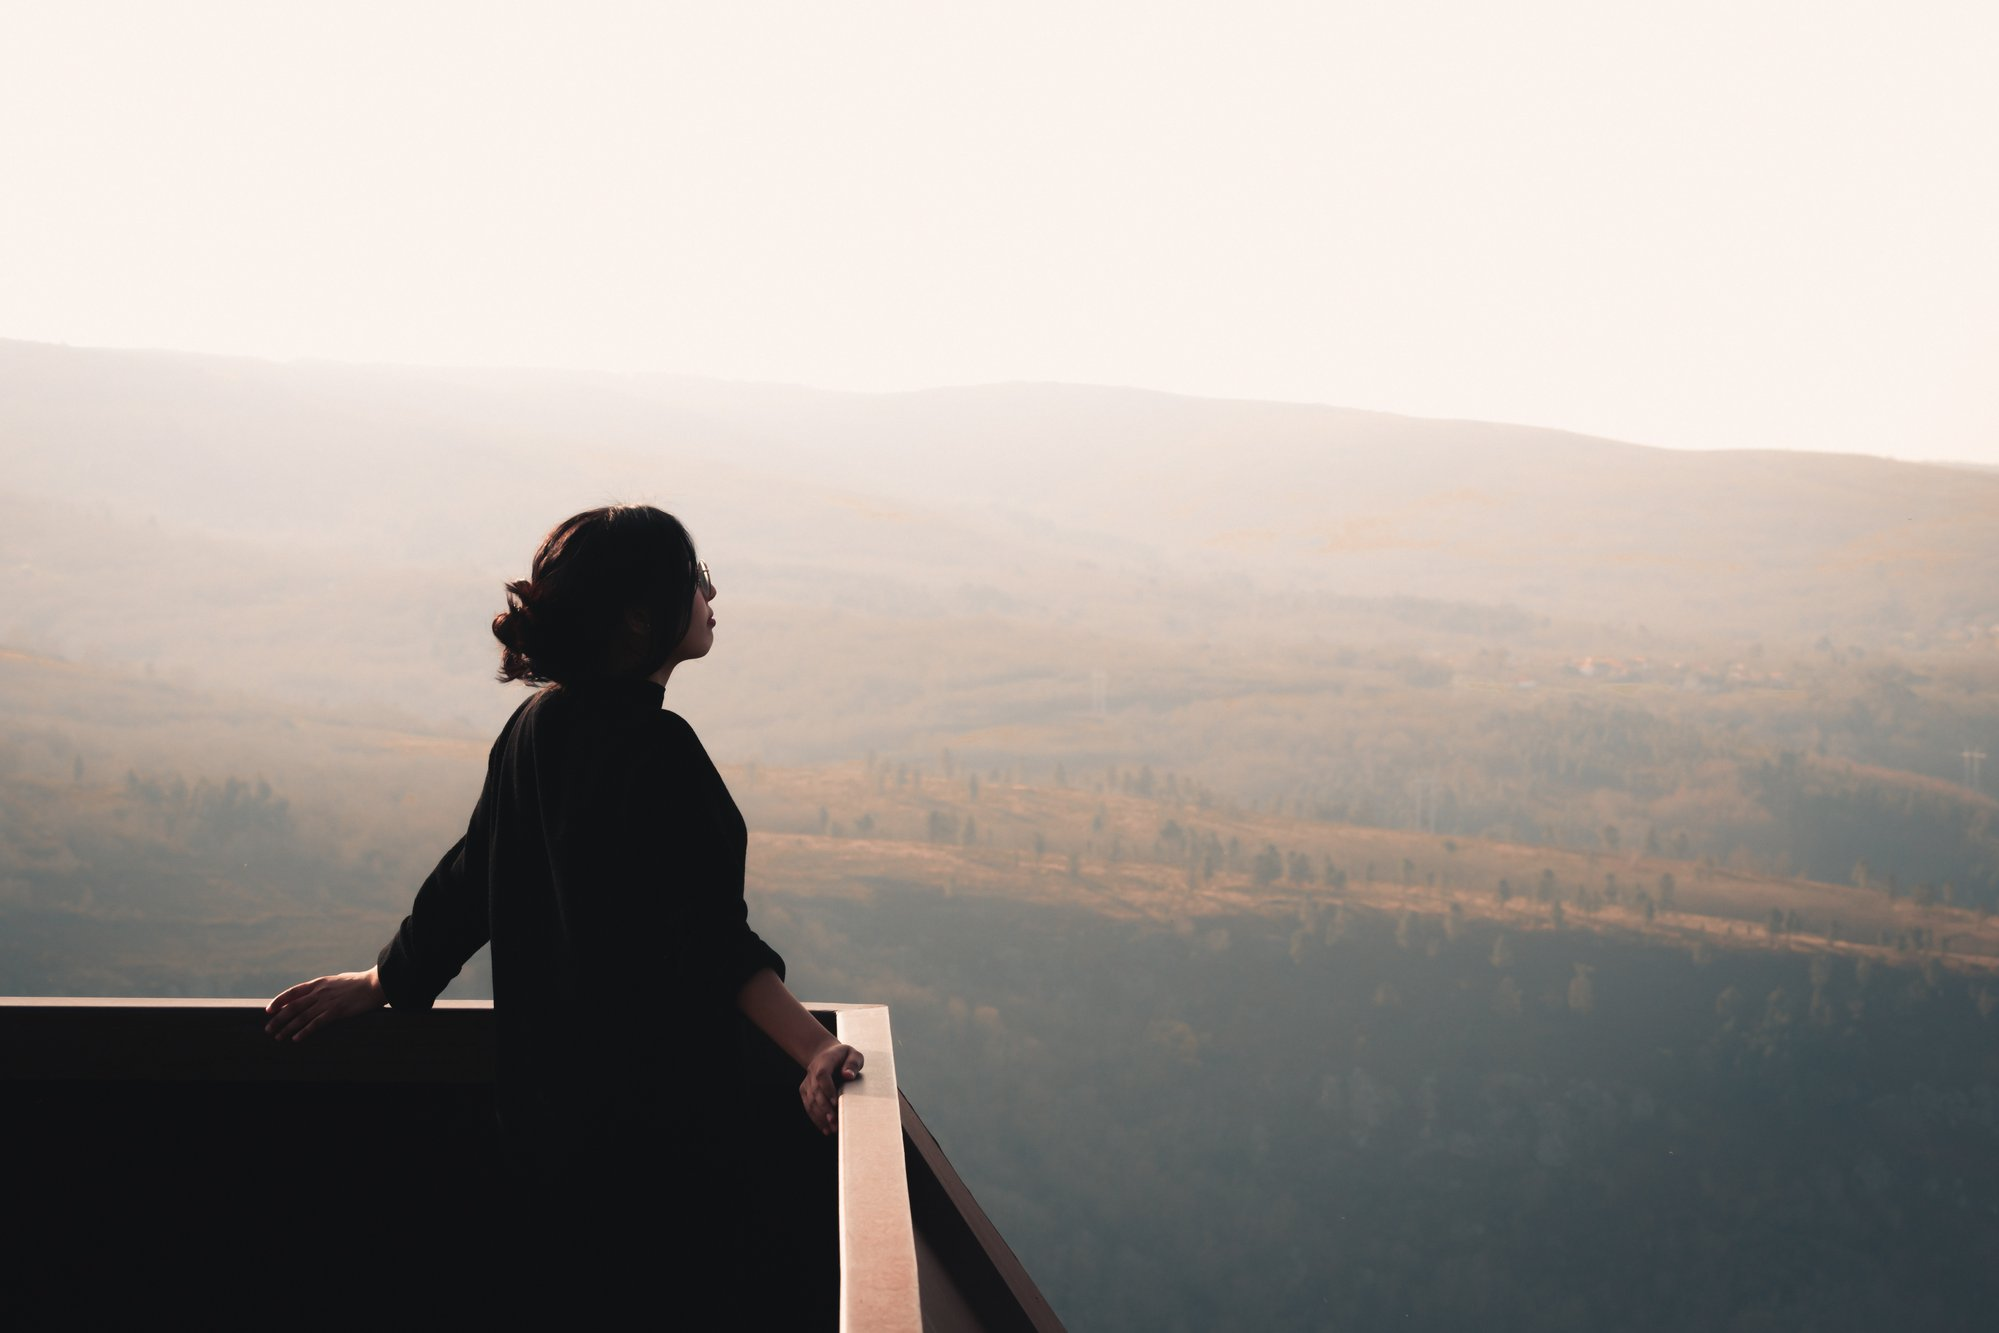 person stands at a lookout and takes in the vista 人站在望风旁,俯瞰景色。